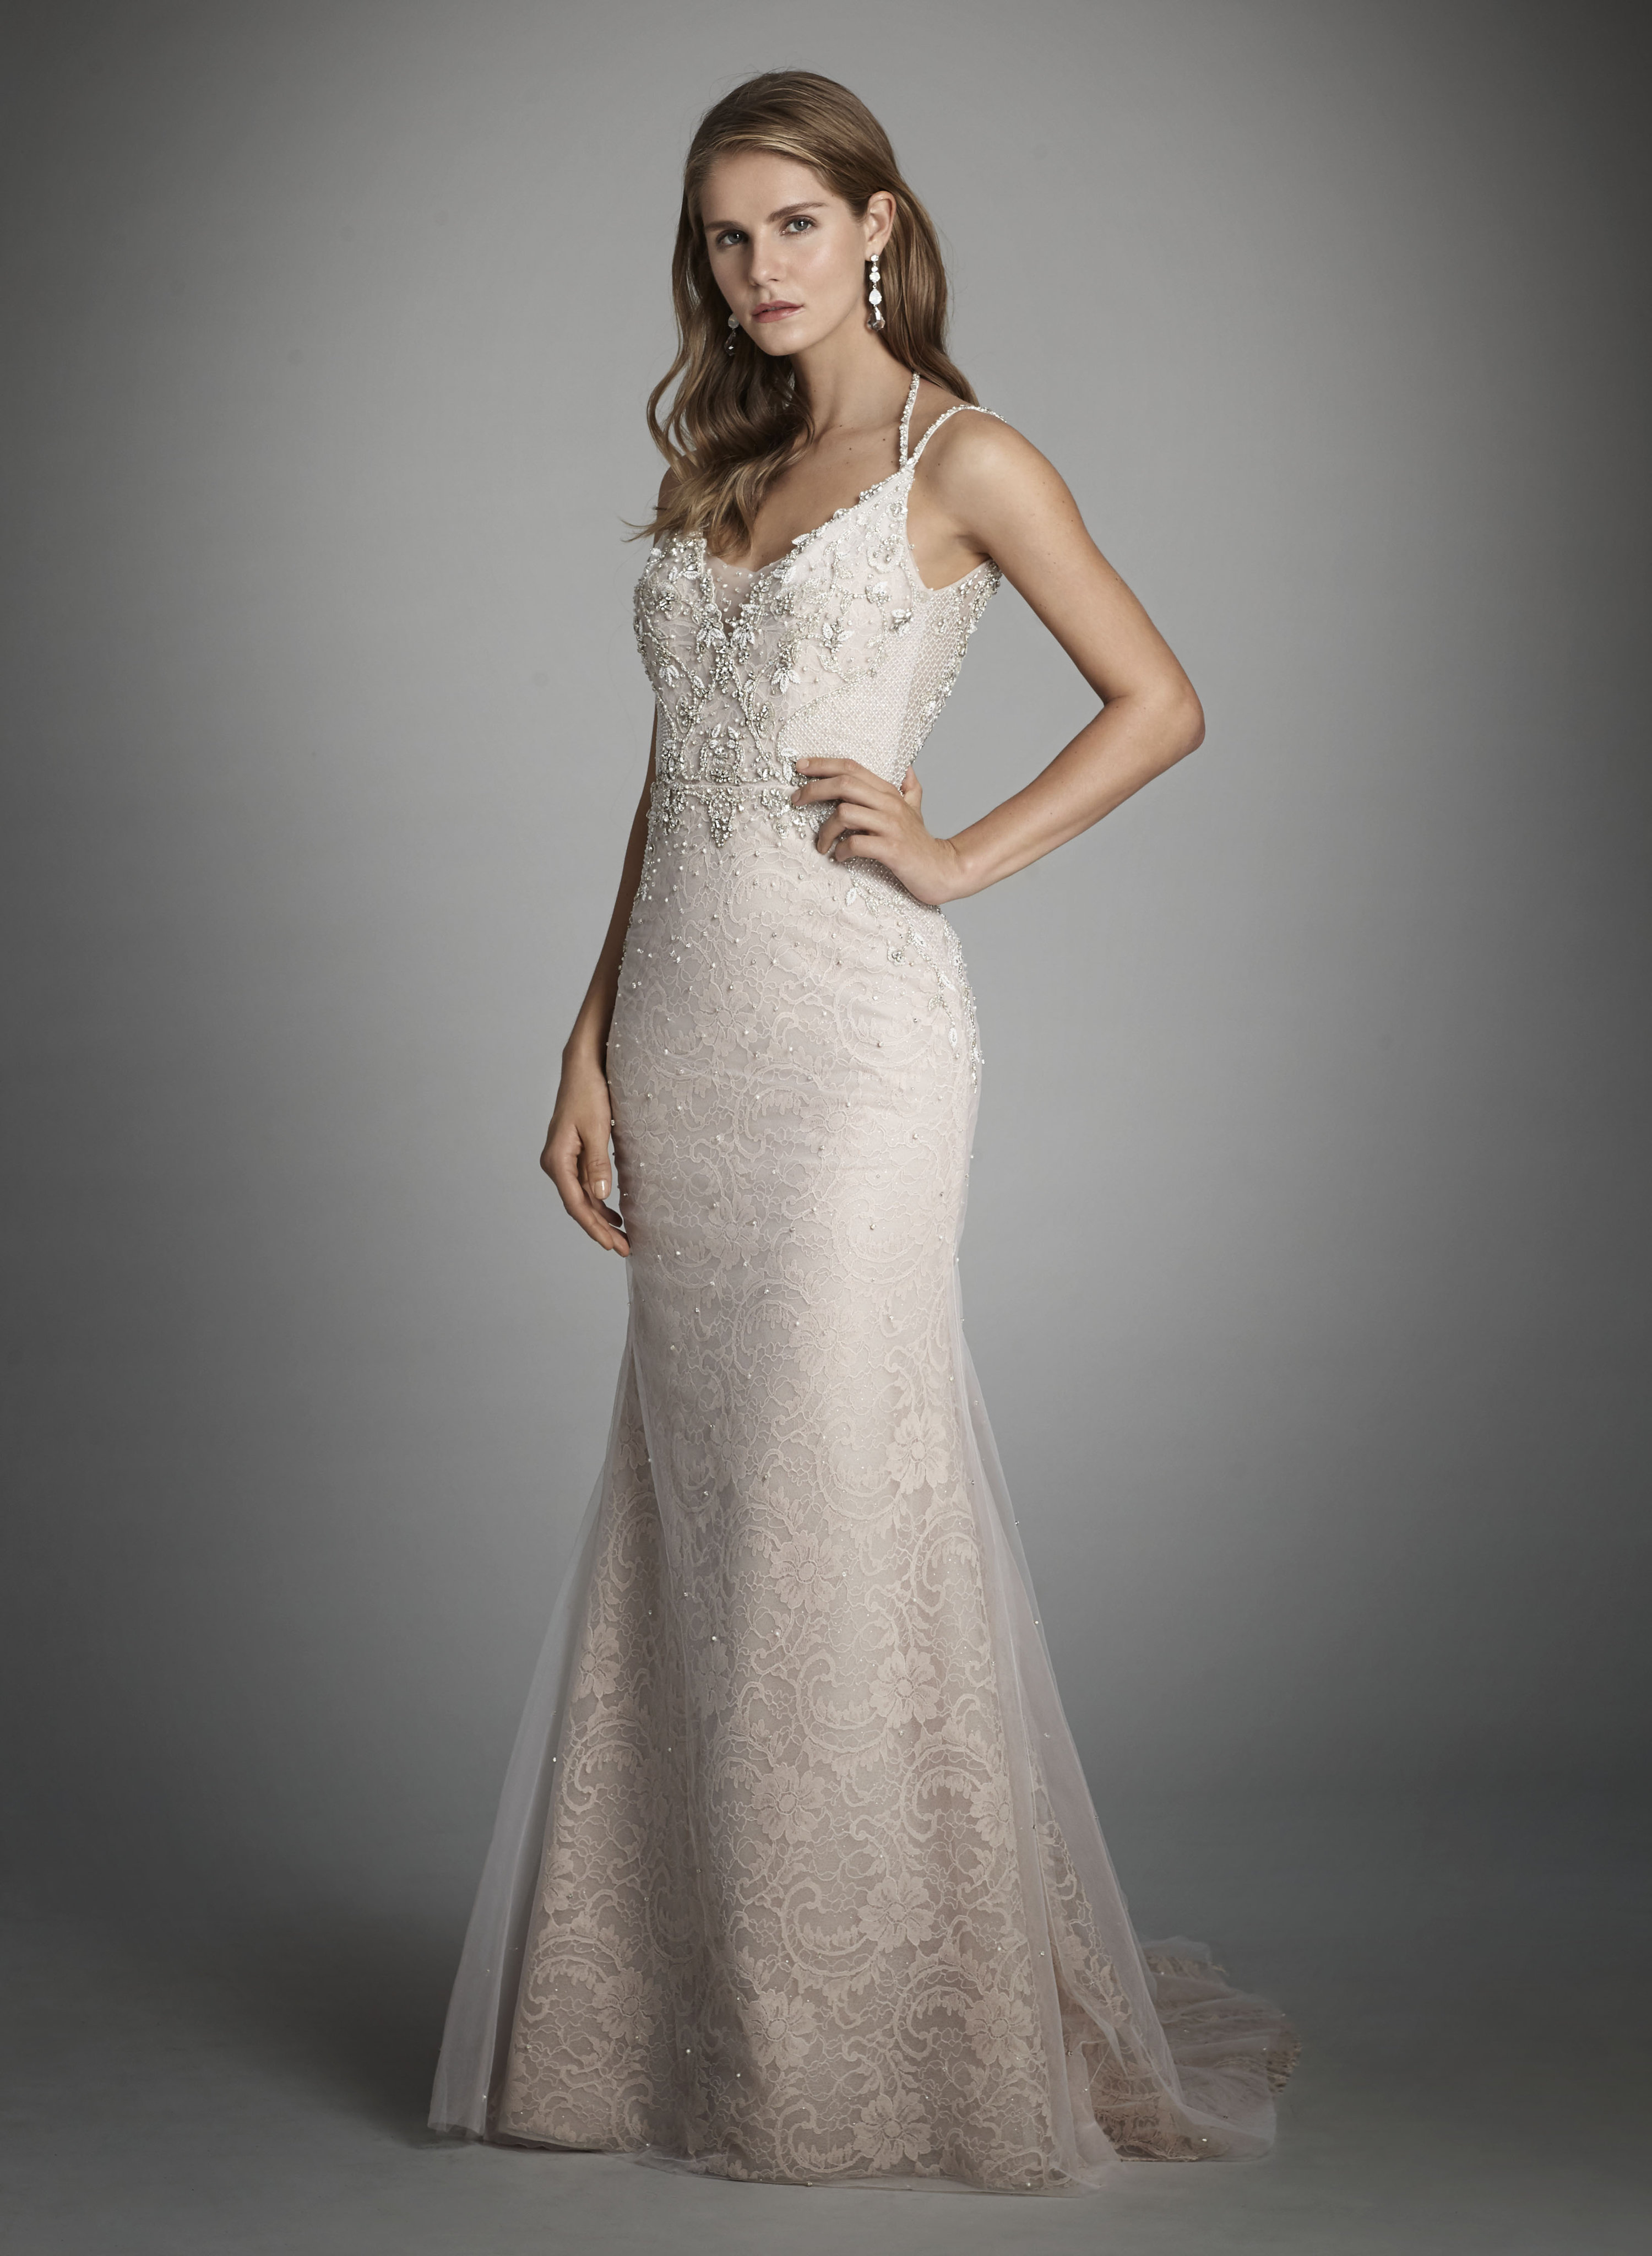 Bridal Gowns and Wedding Dresses by JLM Couture - Style 9714